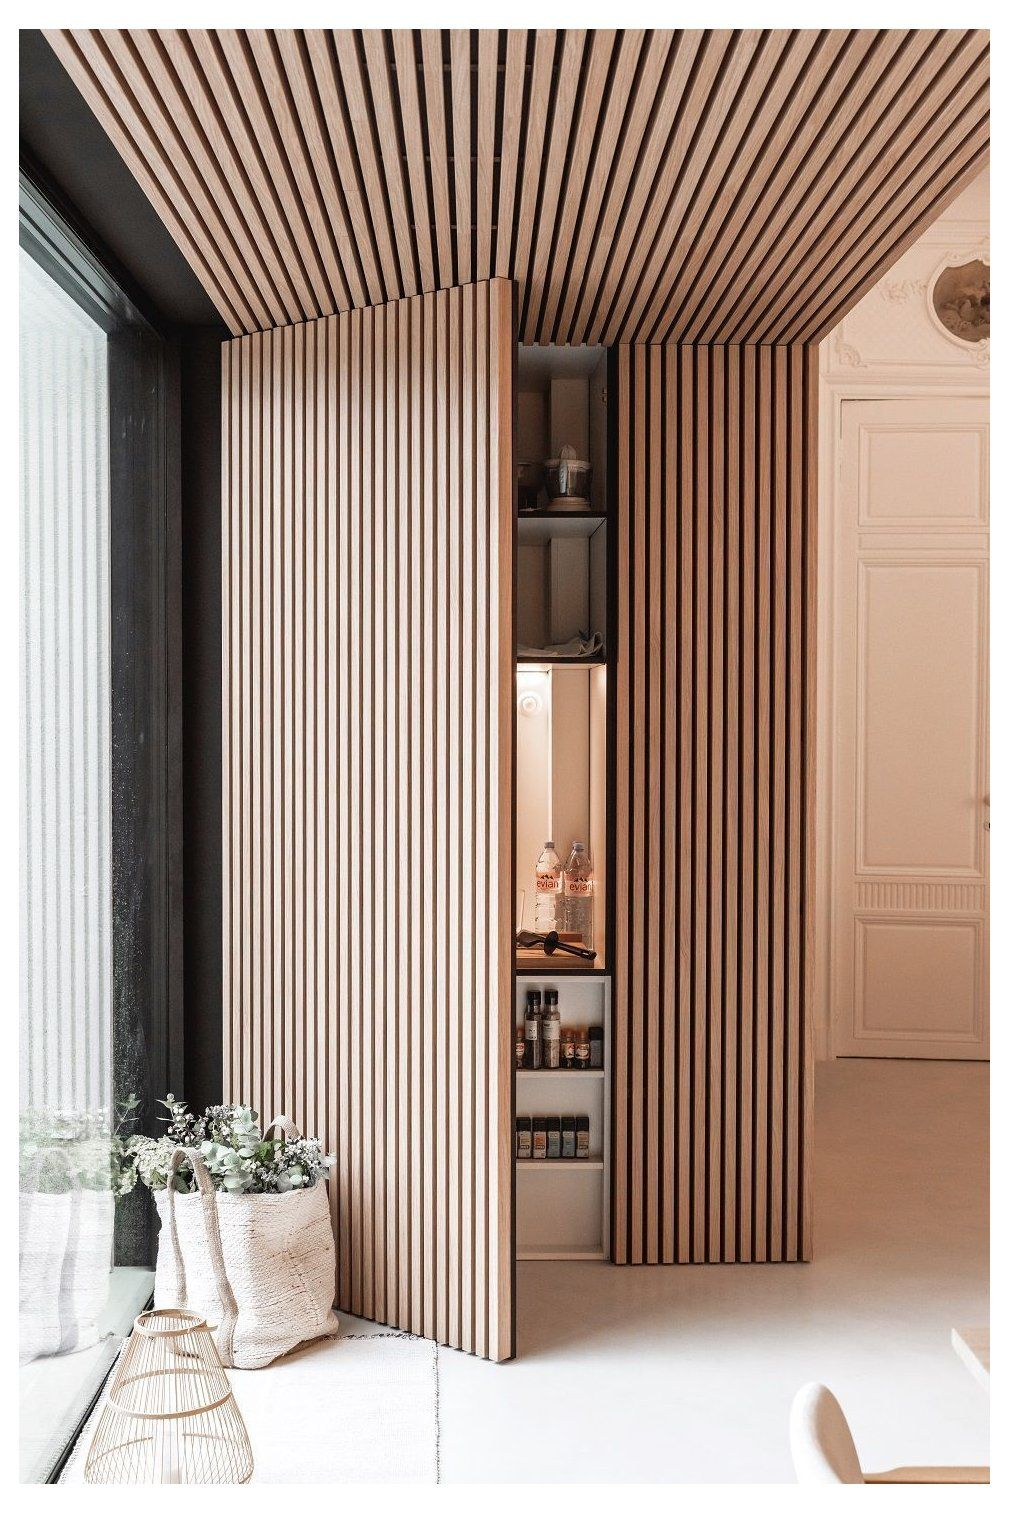 Pin On Modern Architecture Office Pantry Design Modern May 24 2020 Lynes Natural Oak Wood Decor Battens Wi Modern Interior Design Home Modern Interior